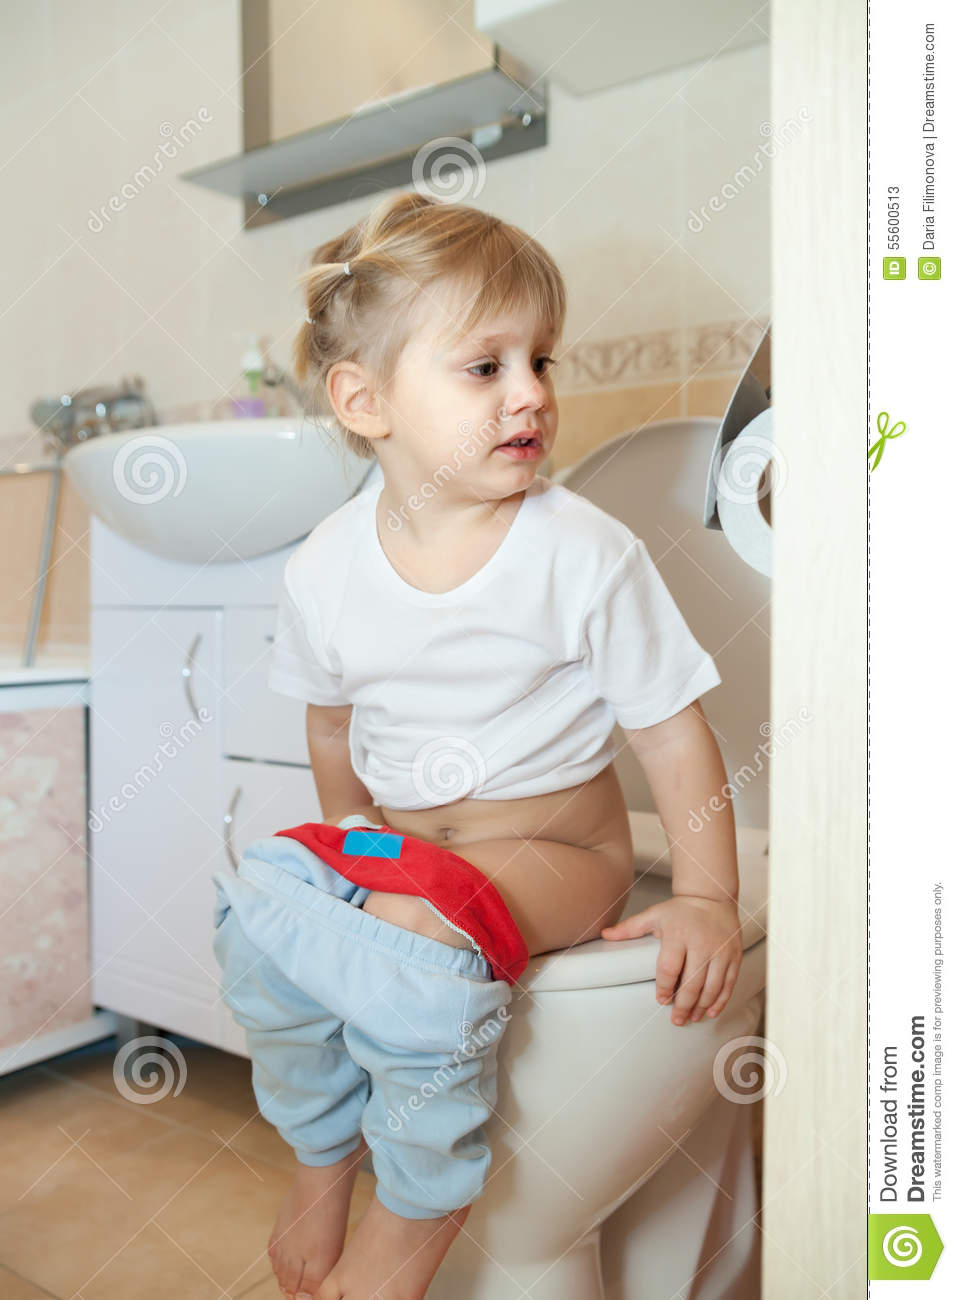 young boys sitting on toilet